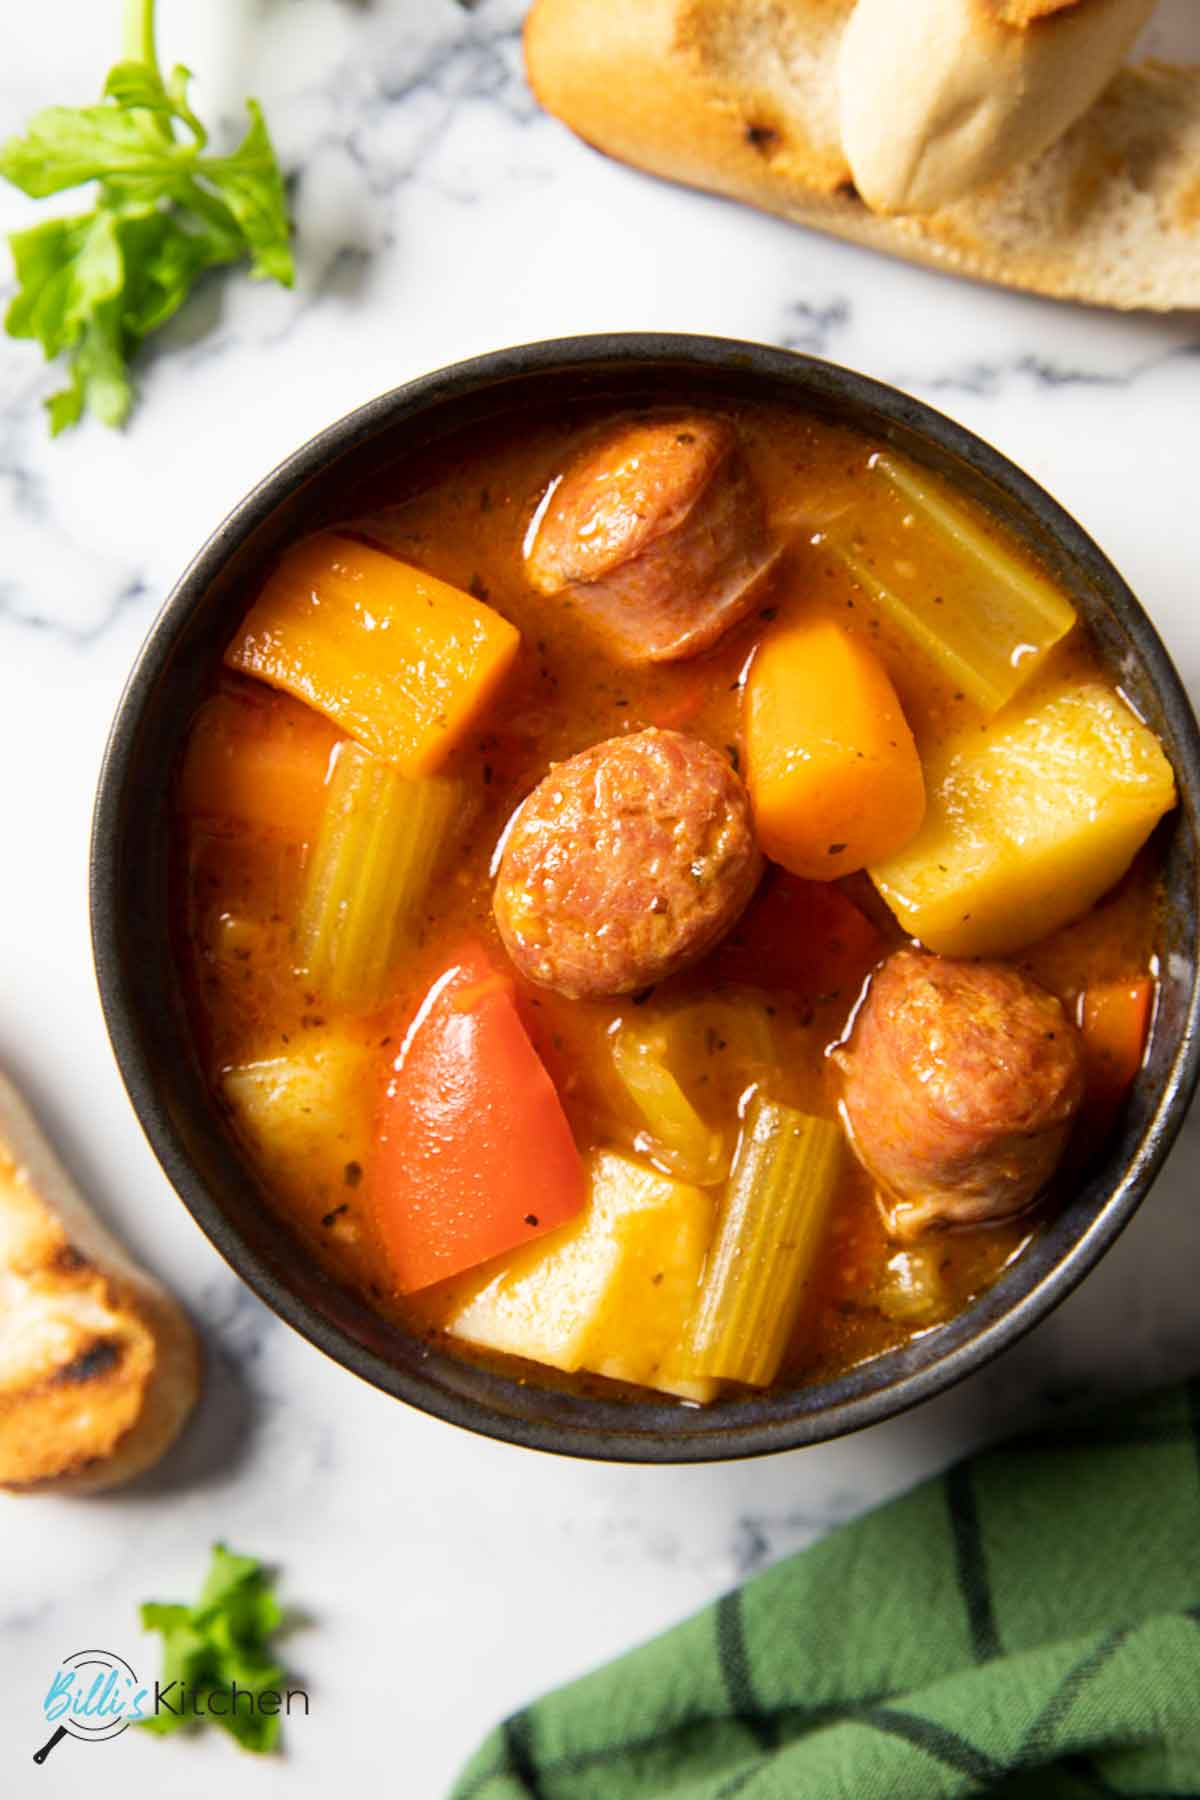 An overhead shot of a bowl of Italian sausage stew with vegetables with some chunky bread on the side.